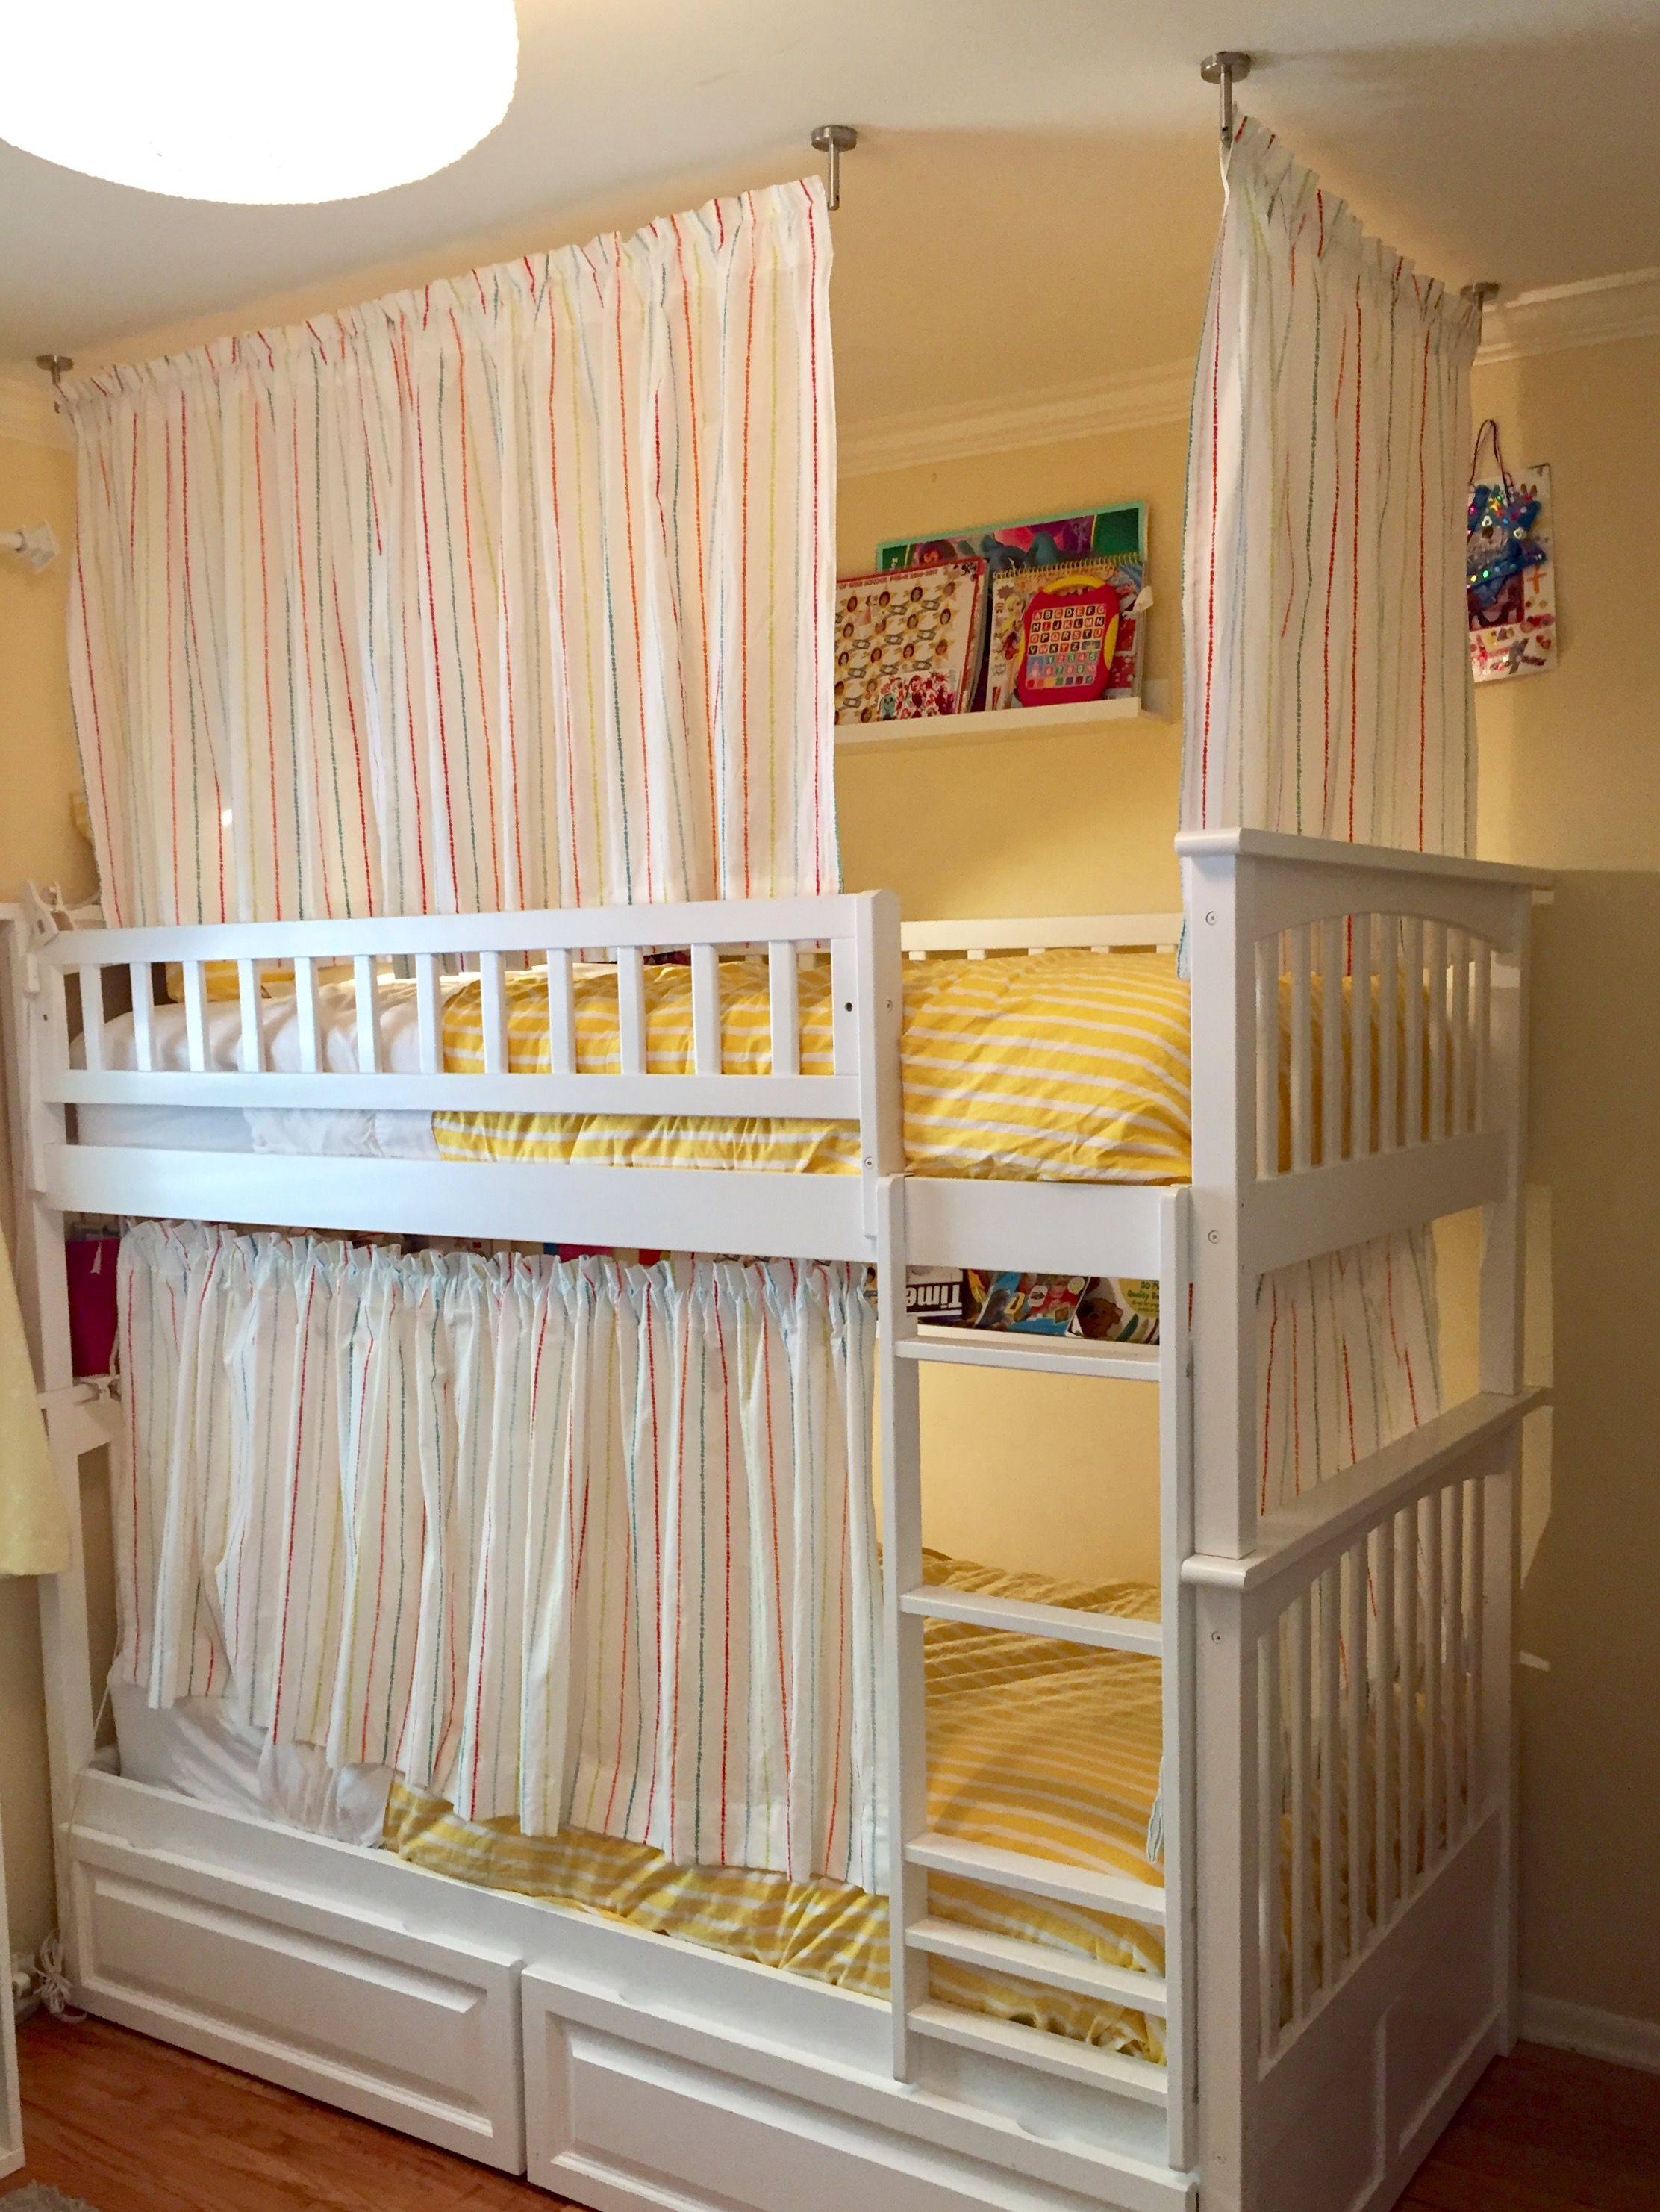 Bunk Bed Curtains Using Ikea Products Dignitet Wire